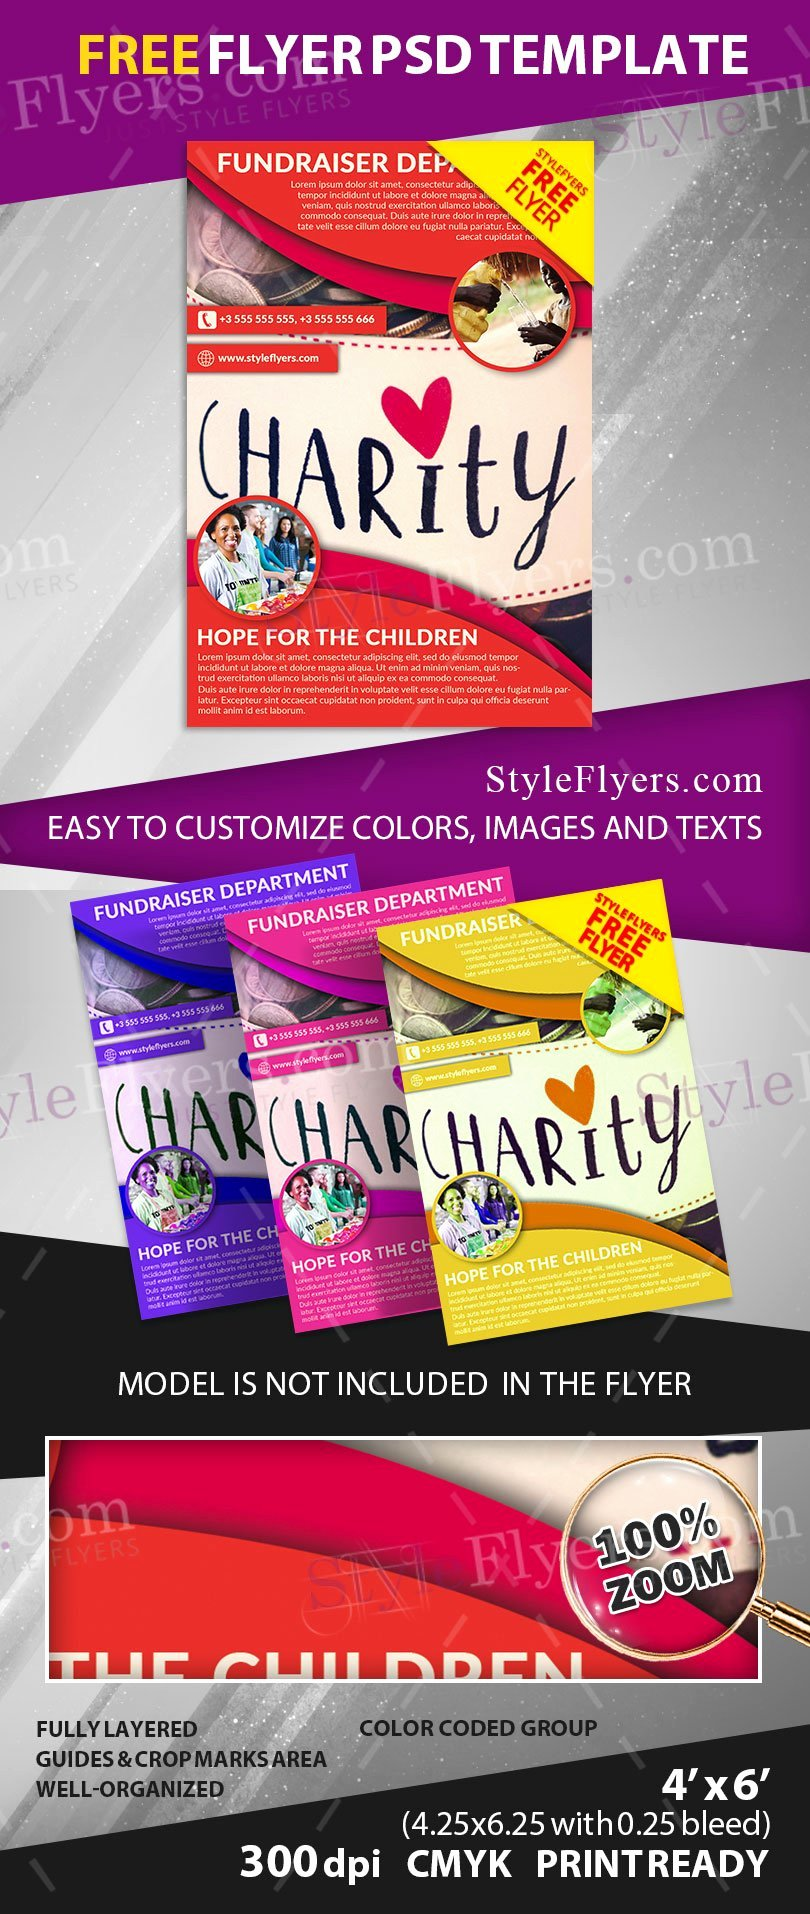 Fundraiser Free Psd Flyer Template Free Download